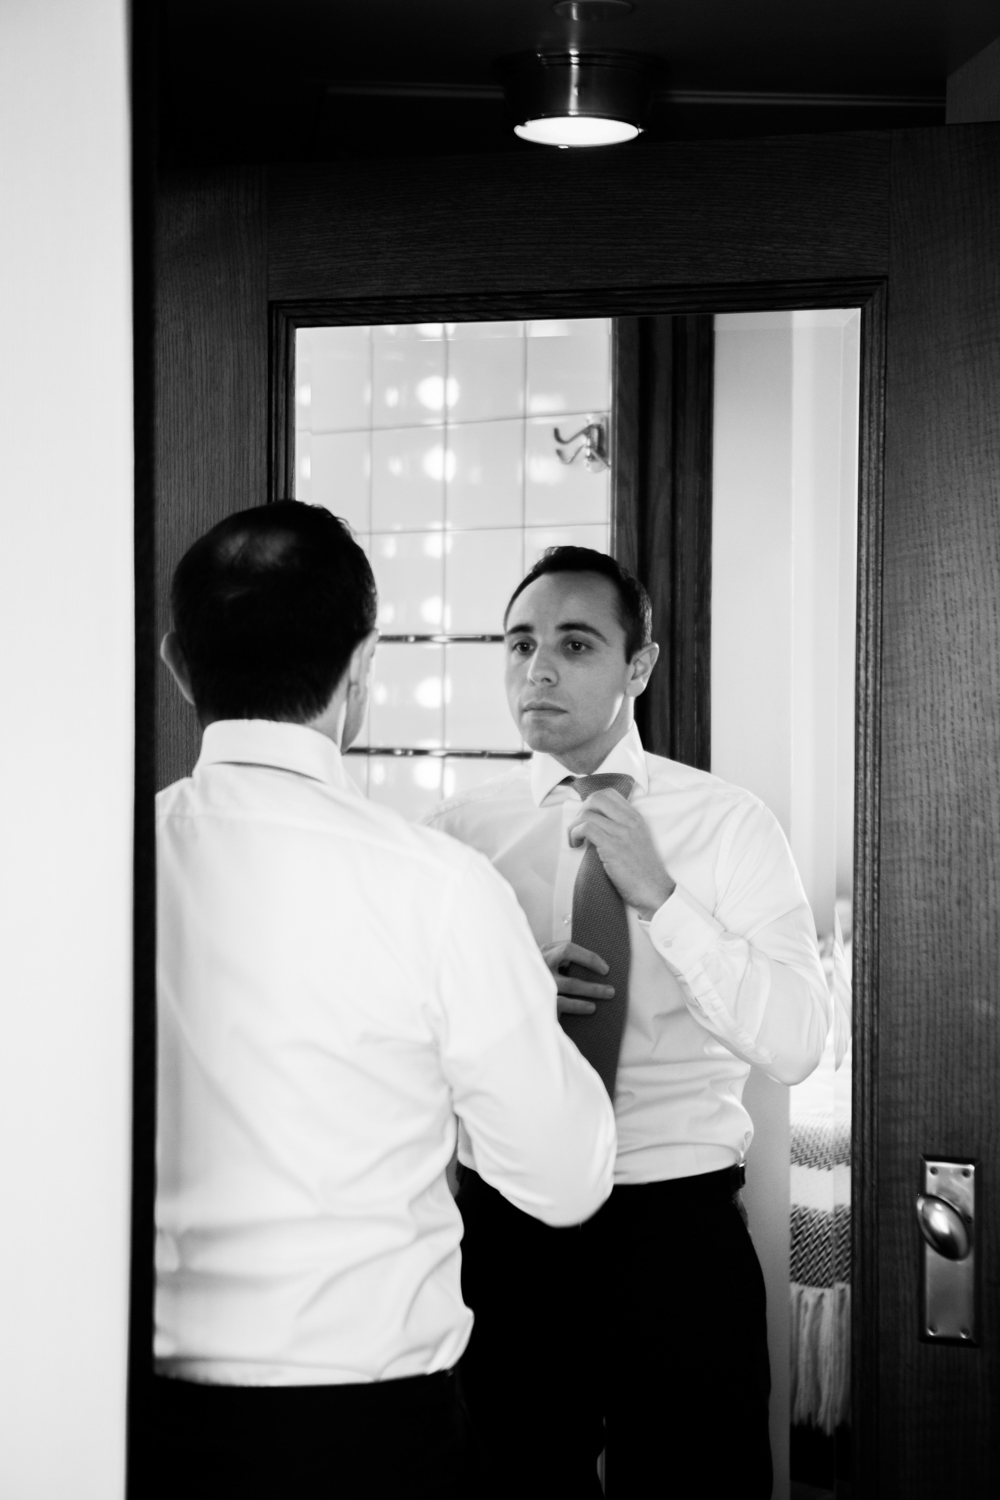 Groom getting ready for his big day